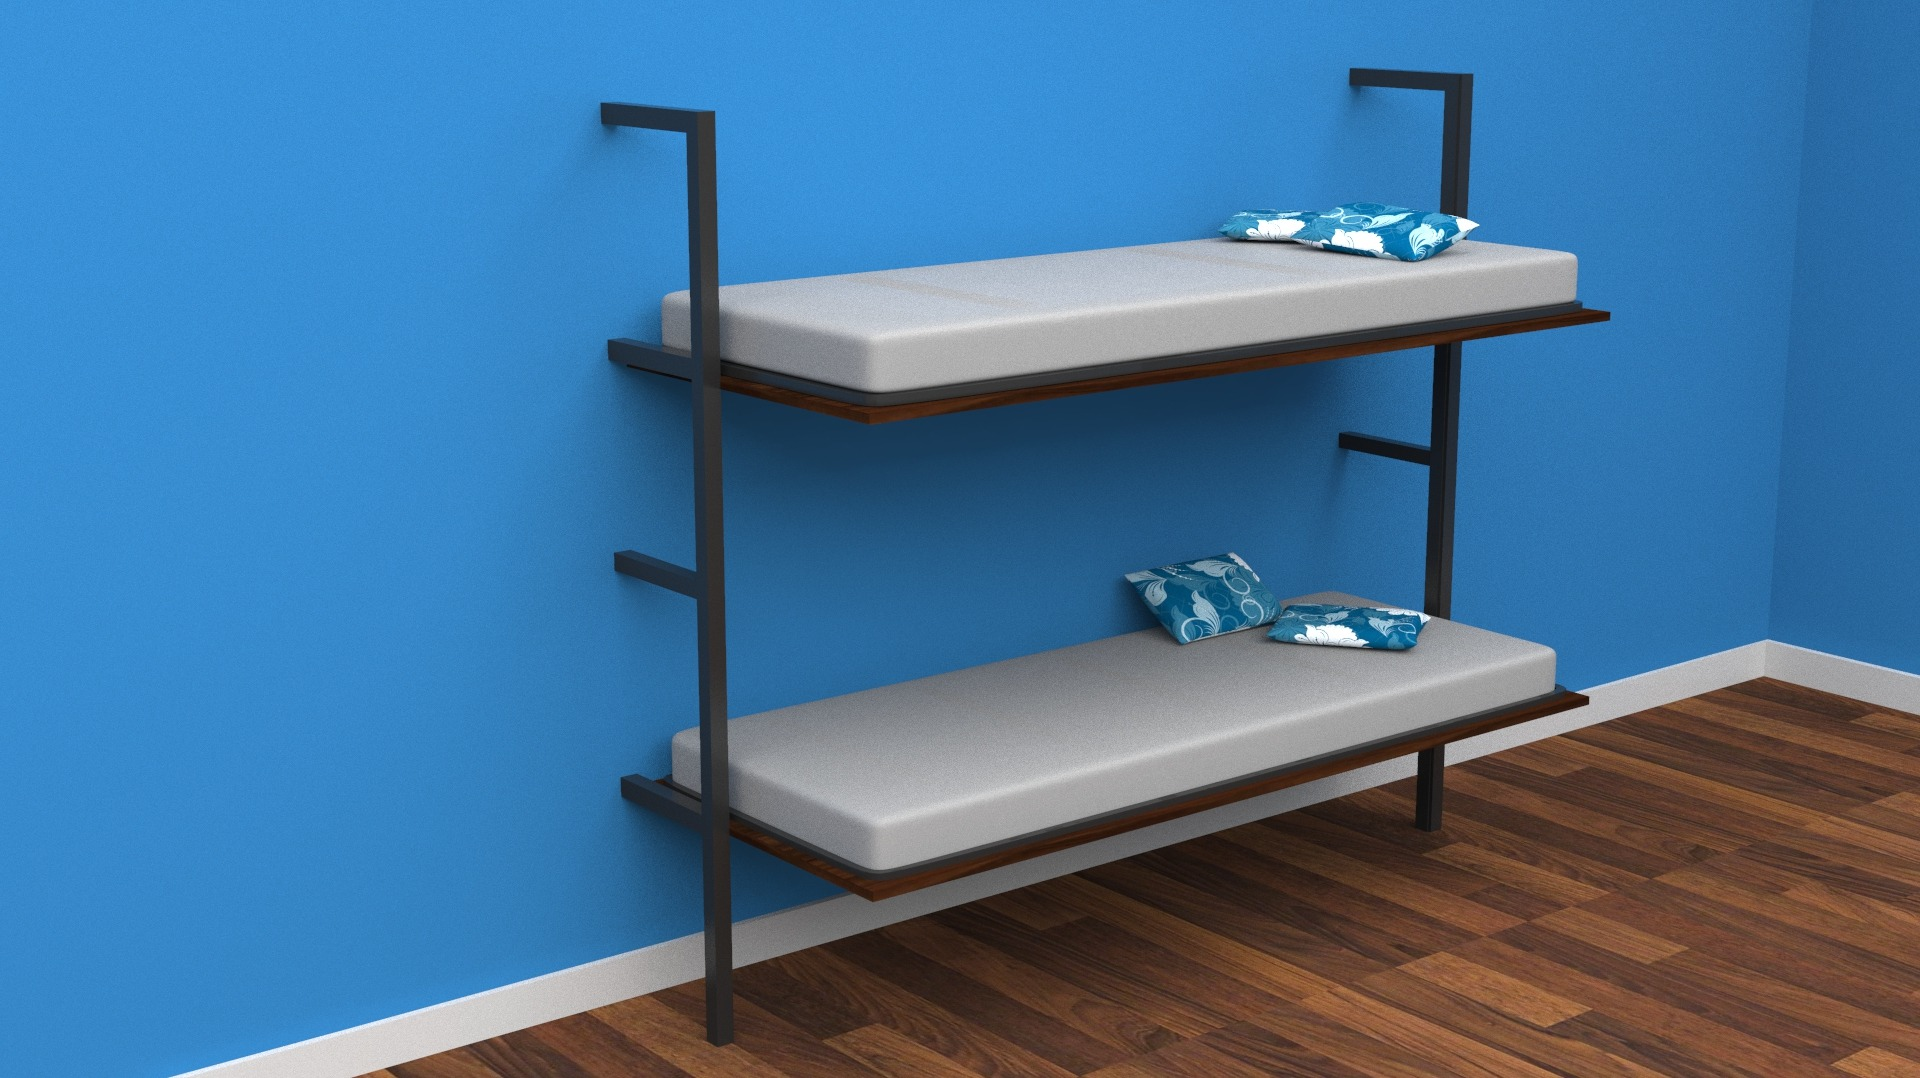 - Horizontal Wall Mounted Folding Double Bunk Bed With Mattresses